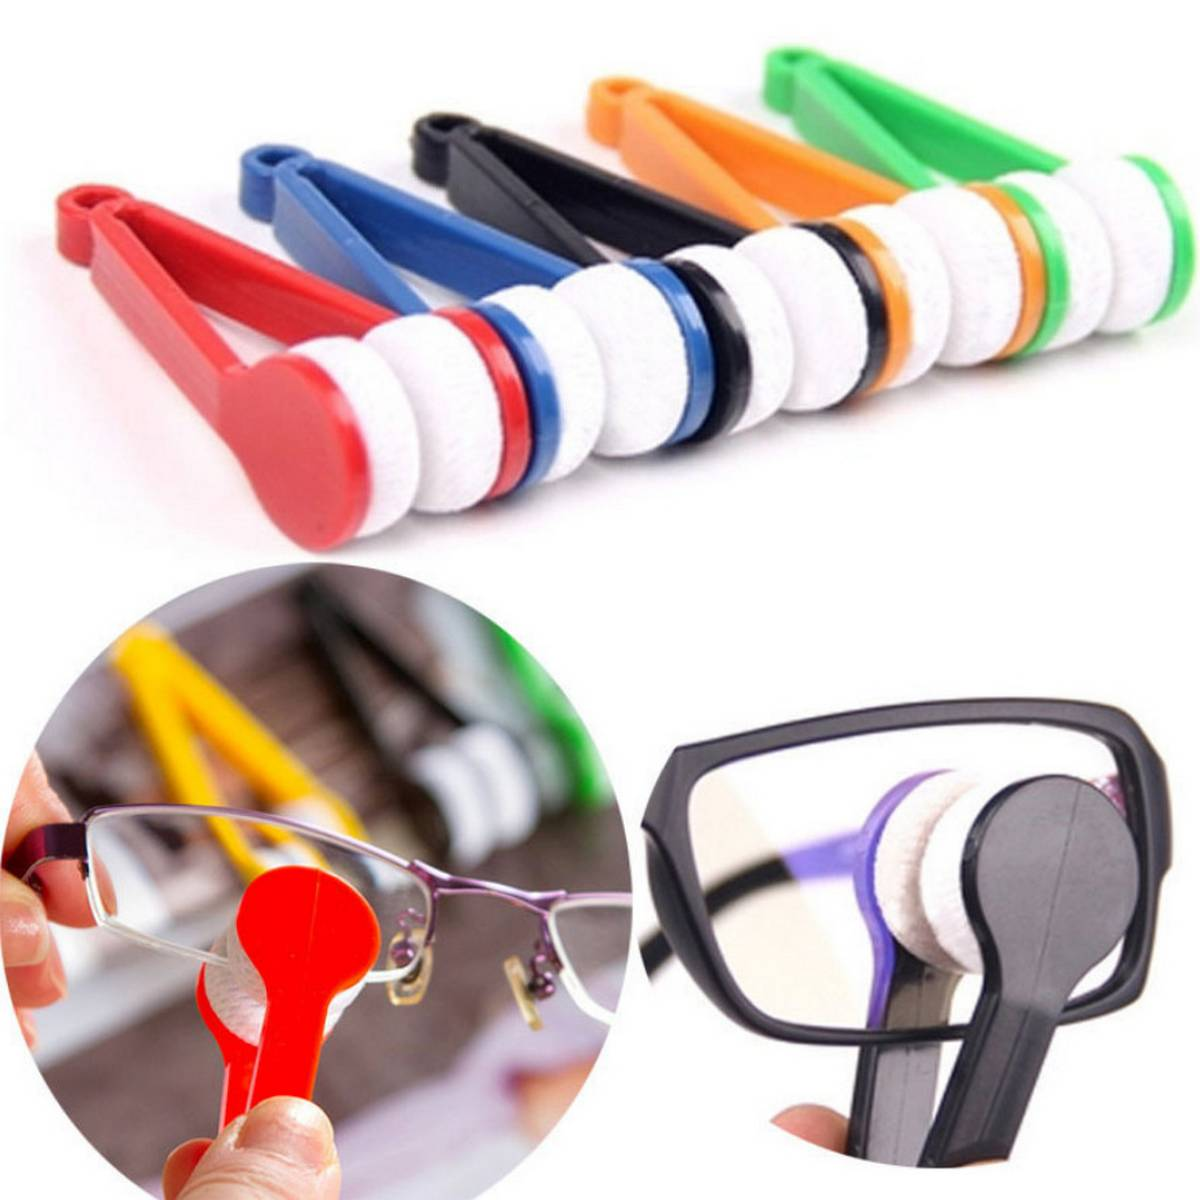 Glasses Cleaning Wipe Portable Super Soft Cleaner Double Sided Microfiber Brush Tool Rub Eyeglass Sunglasses Eyewear Spectacles Brushes Wiping Two Side Screen Fine Fiber Lens Clothes Dedicated Convenience Clean With Key Ring Maintain Convenient Cloth